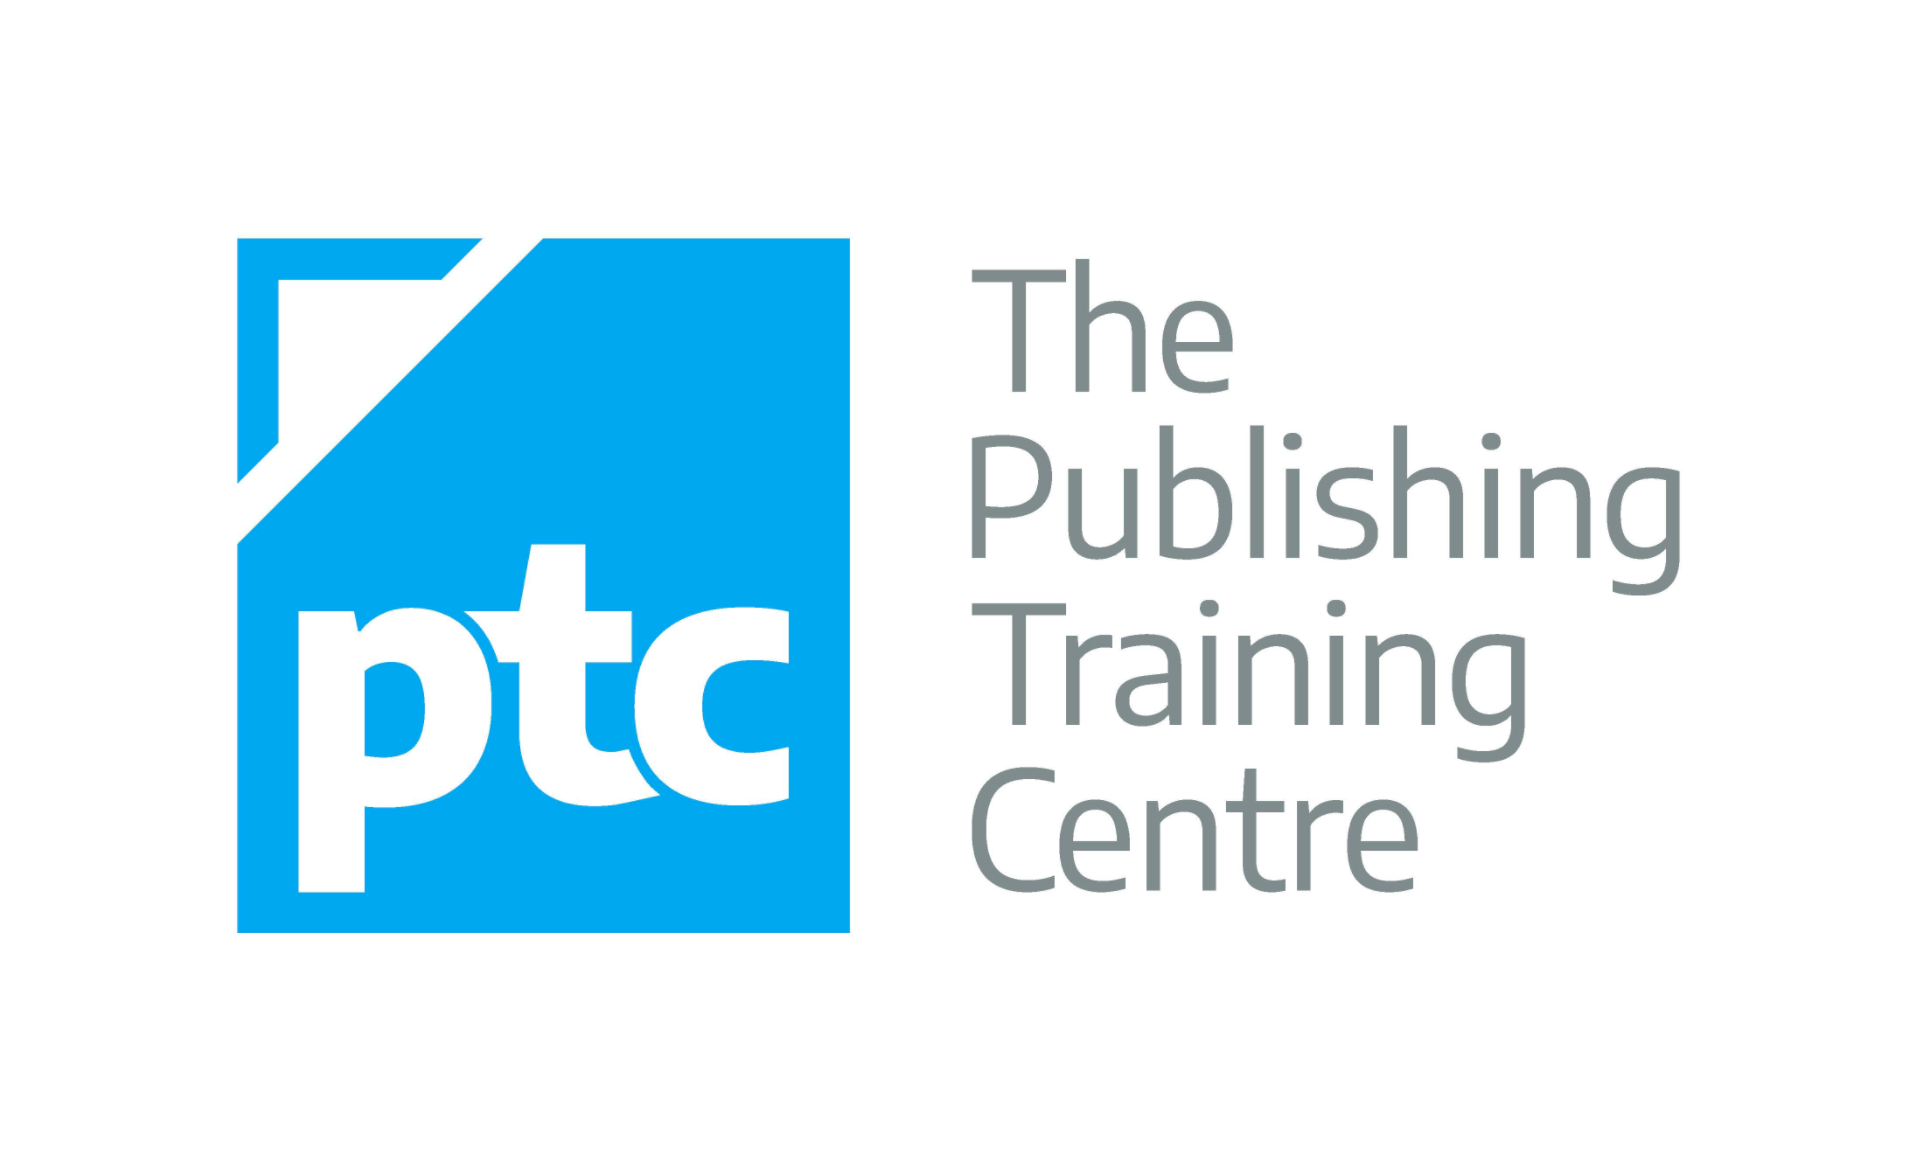 The Publishing Training Centre Learn How To Edit Like A Pro With [year]'s 7+ FREE Best Online Proofreading Courses